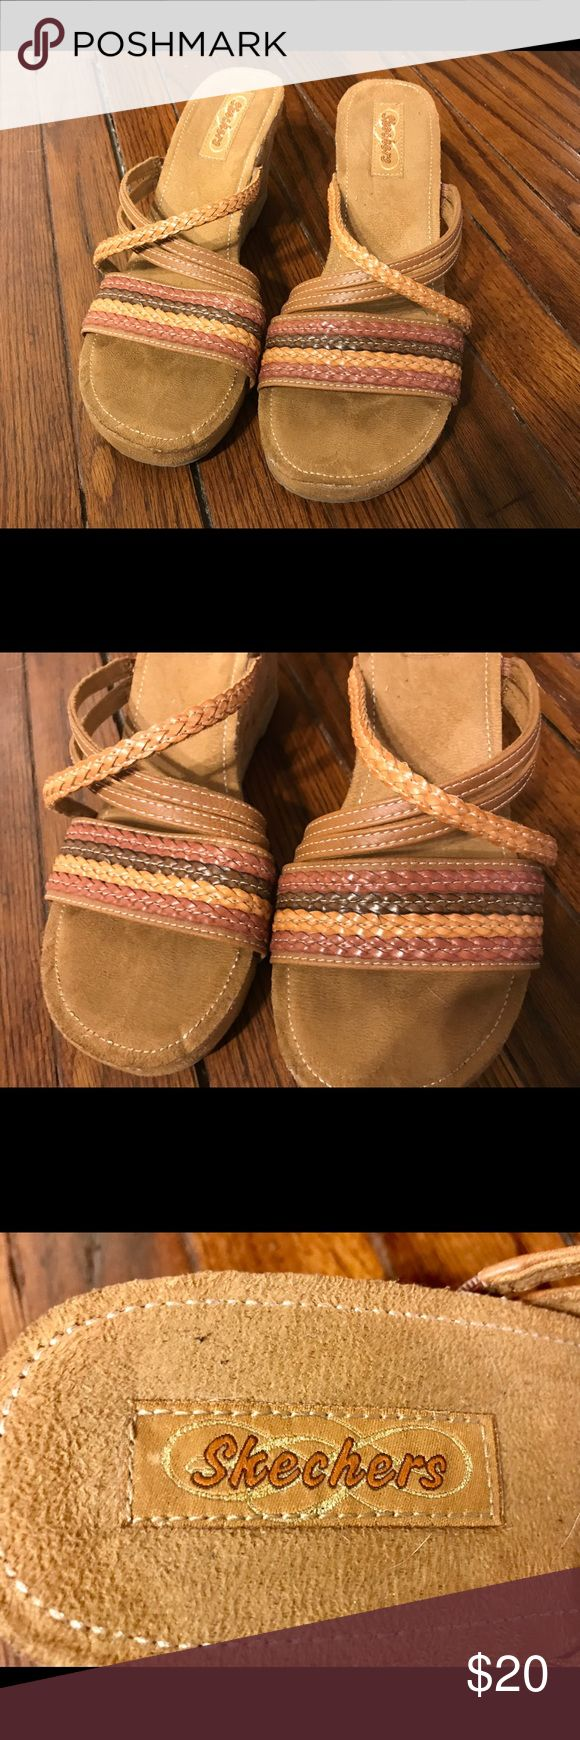 """Skechers Wedge Sandals- Never Worn! Size 10 3"""" Cork Wedge Heel * Very Comfy footbed * These have never been worn outside. They were a gift and I've tried them in several times because they are so cute but I rarely wear heals because of my height. Skechers Shoes Wedges"""